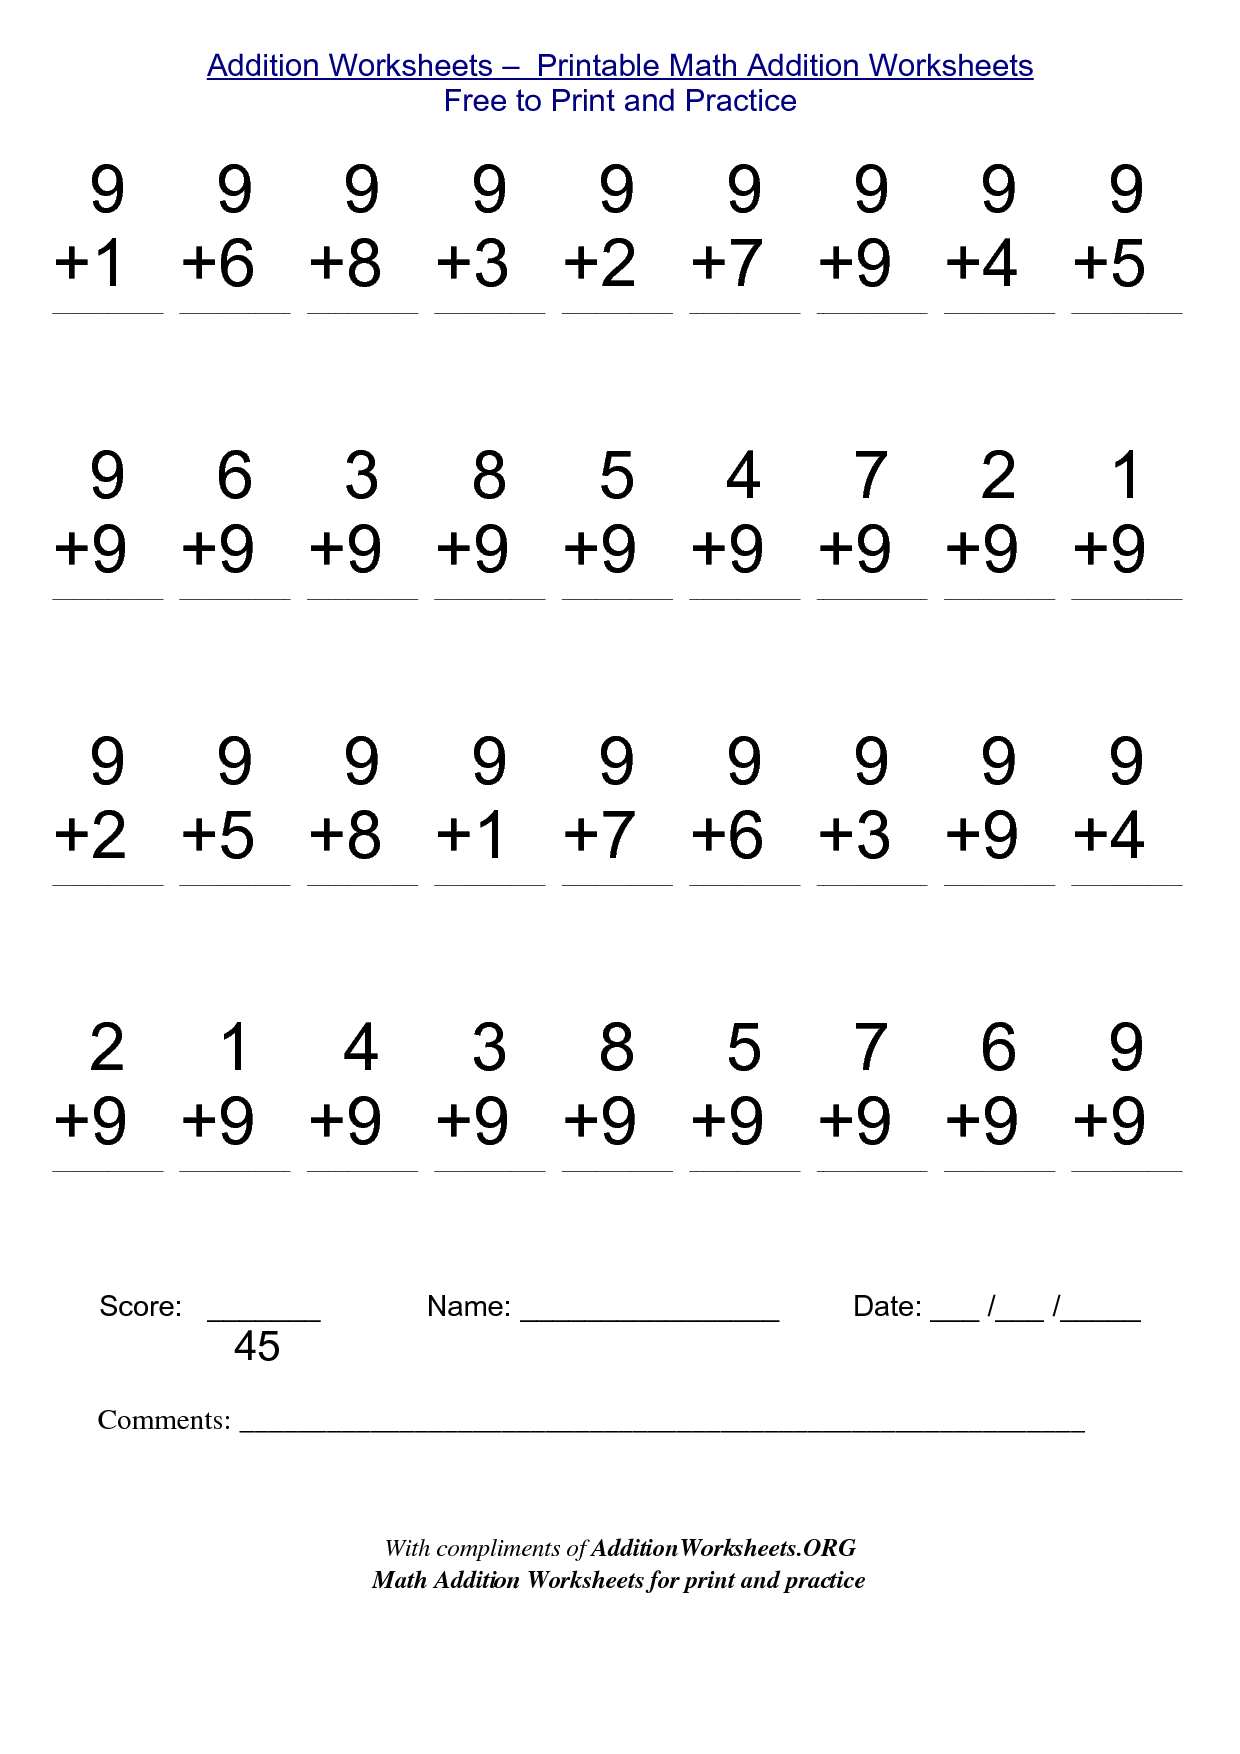 math worksheet : free printable math worksheets for 1st grade  synhoff : Free Math Worksheets For 1st Grade